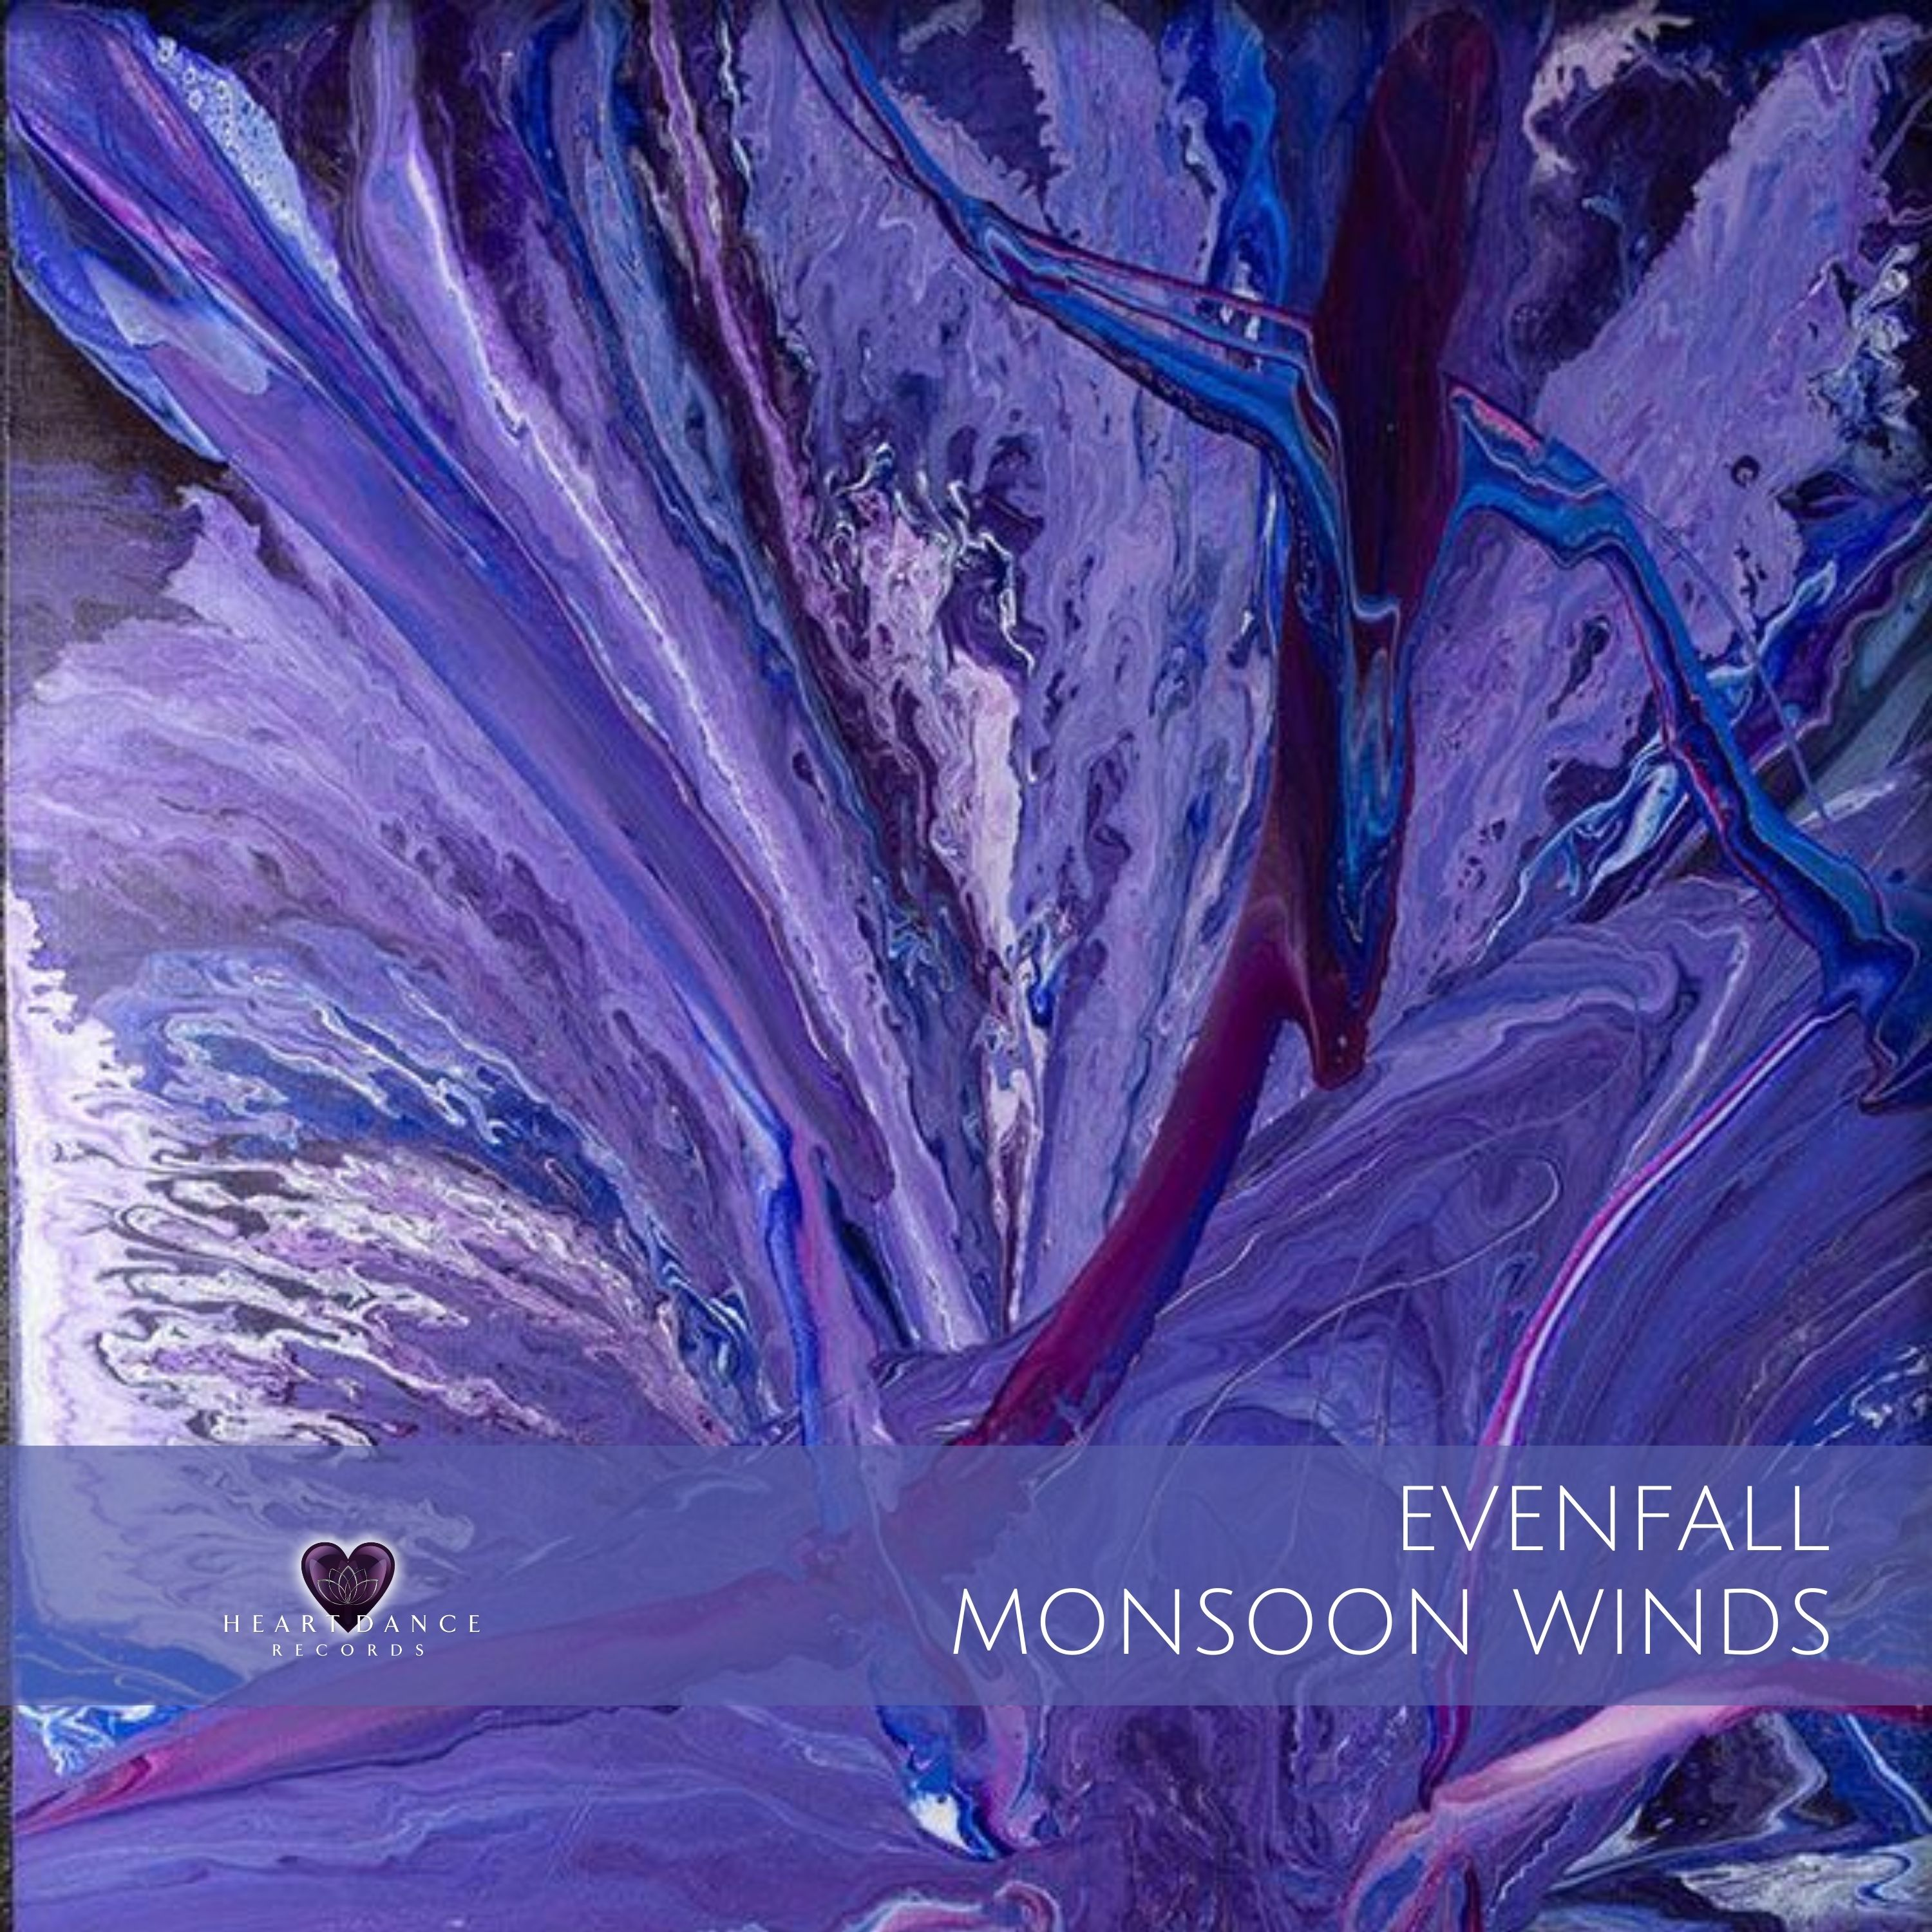 Evenfall - Monsoon Winds